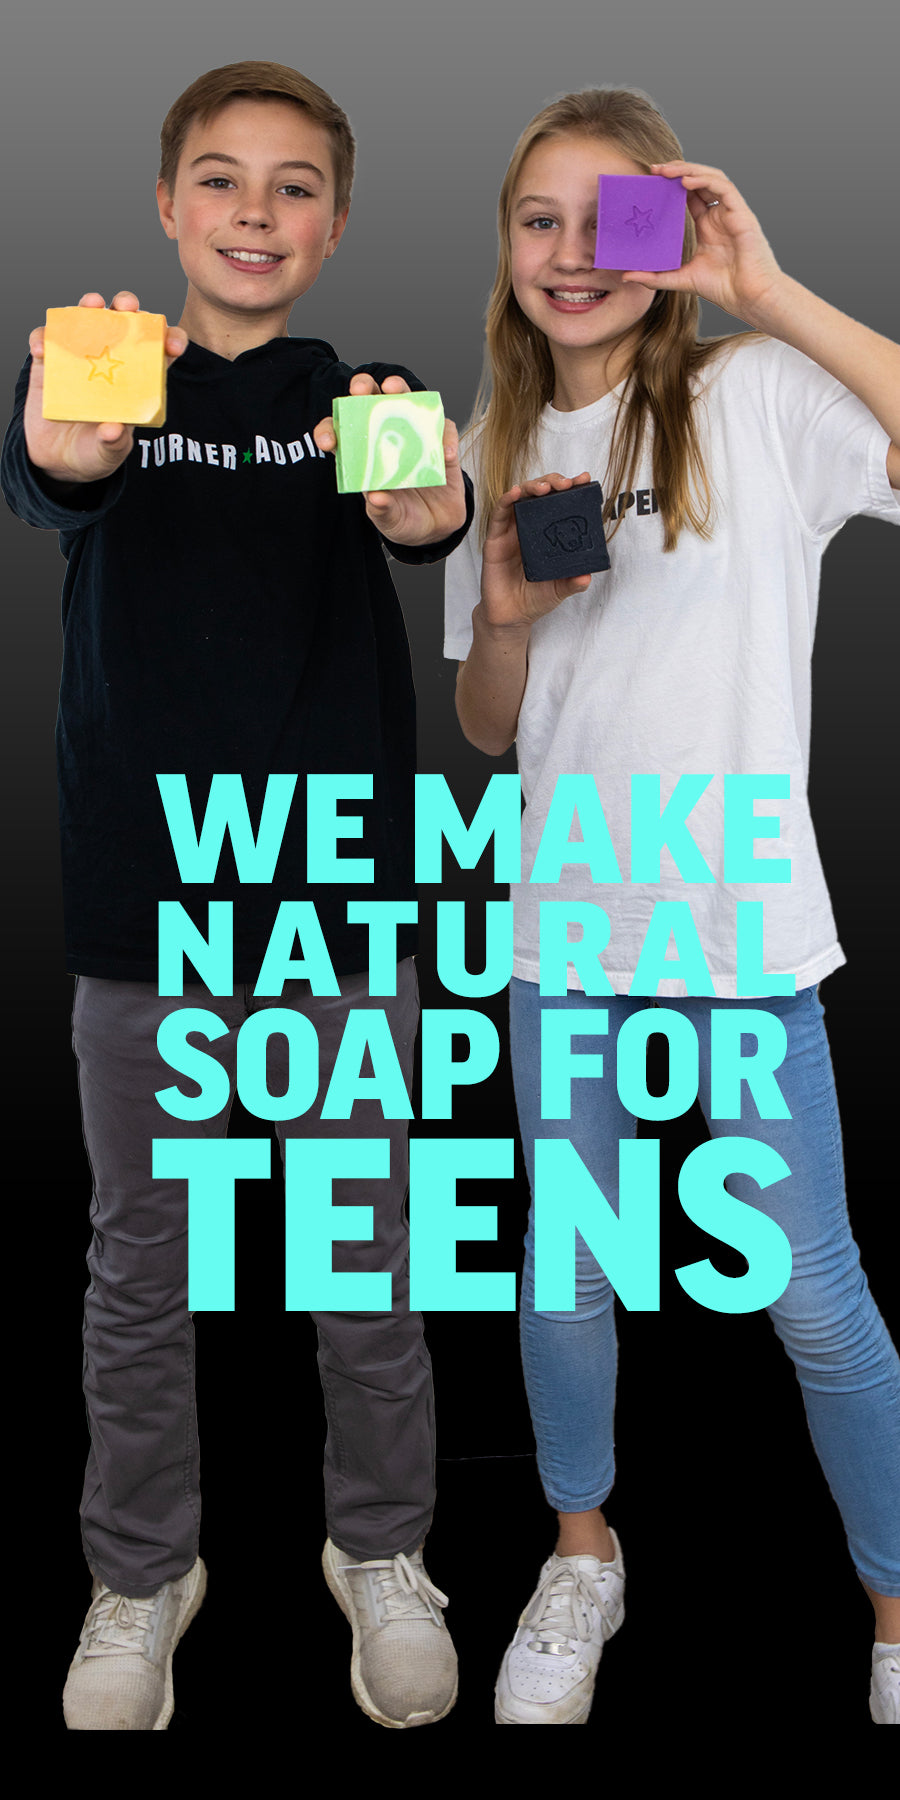 Turner and Addie Soap for Teens